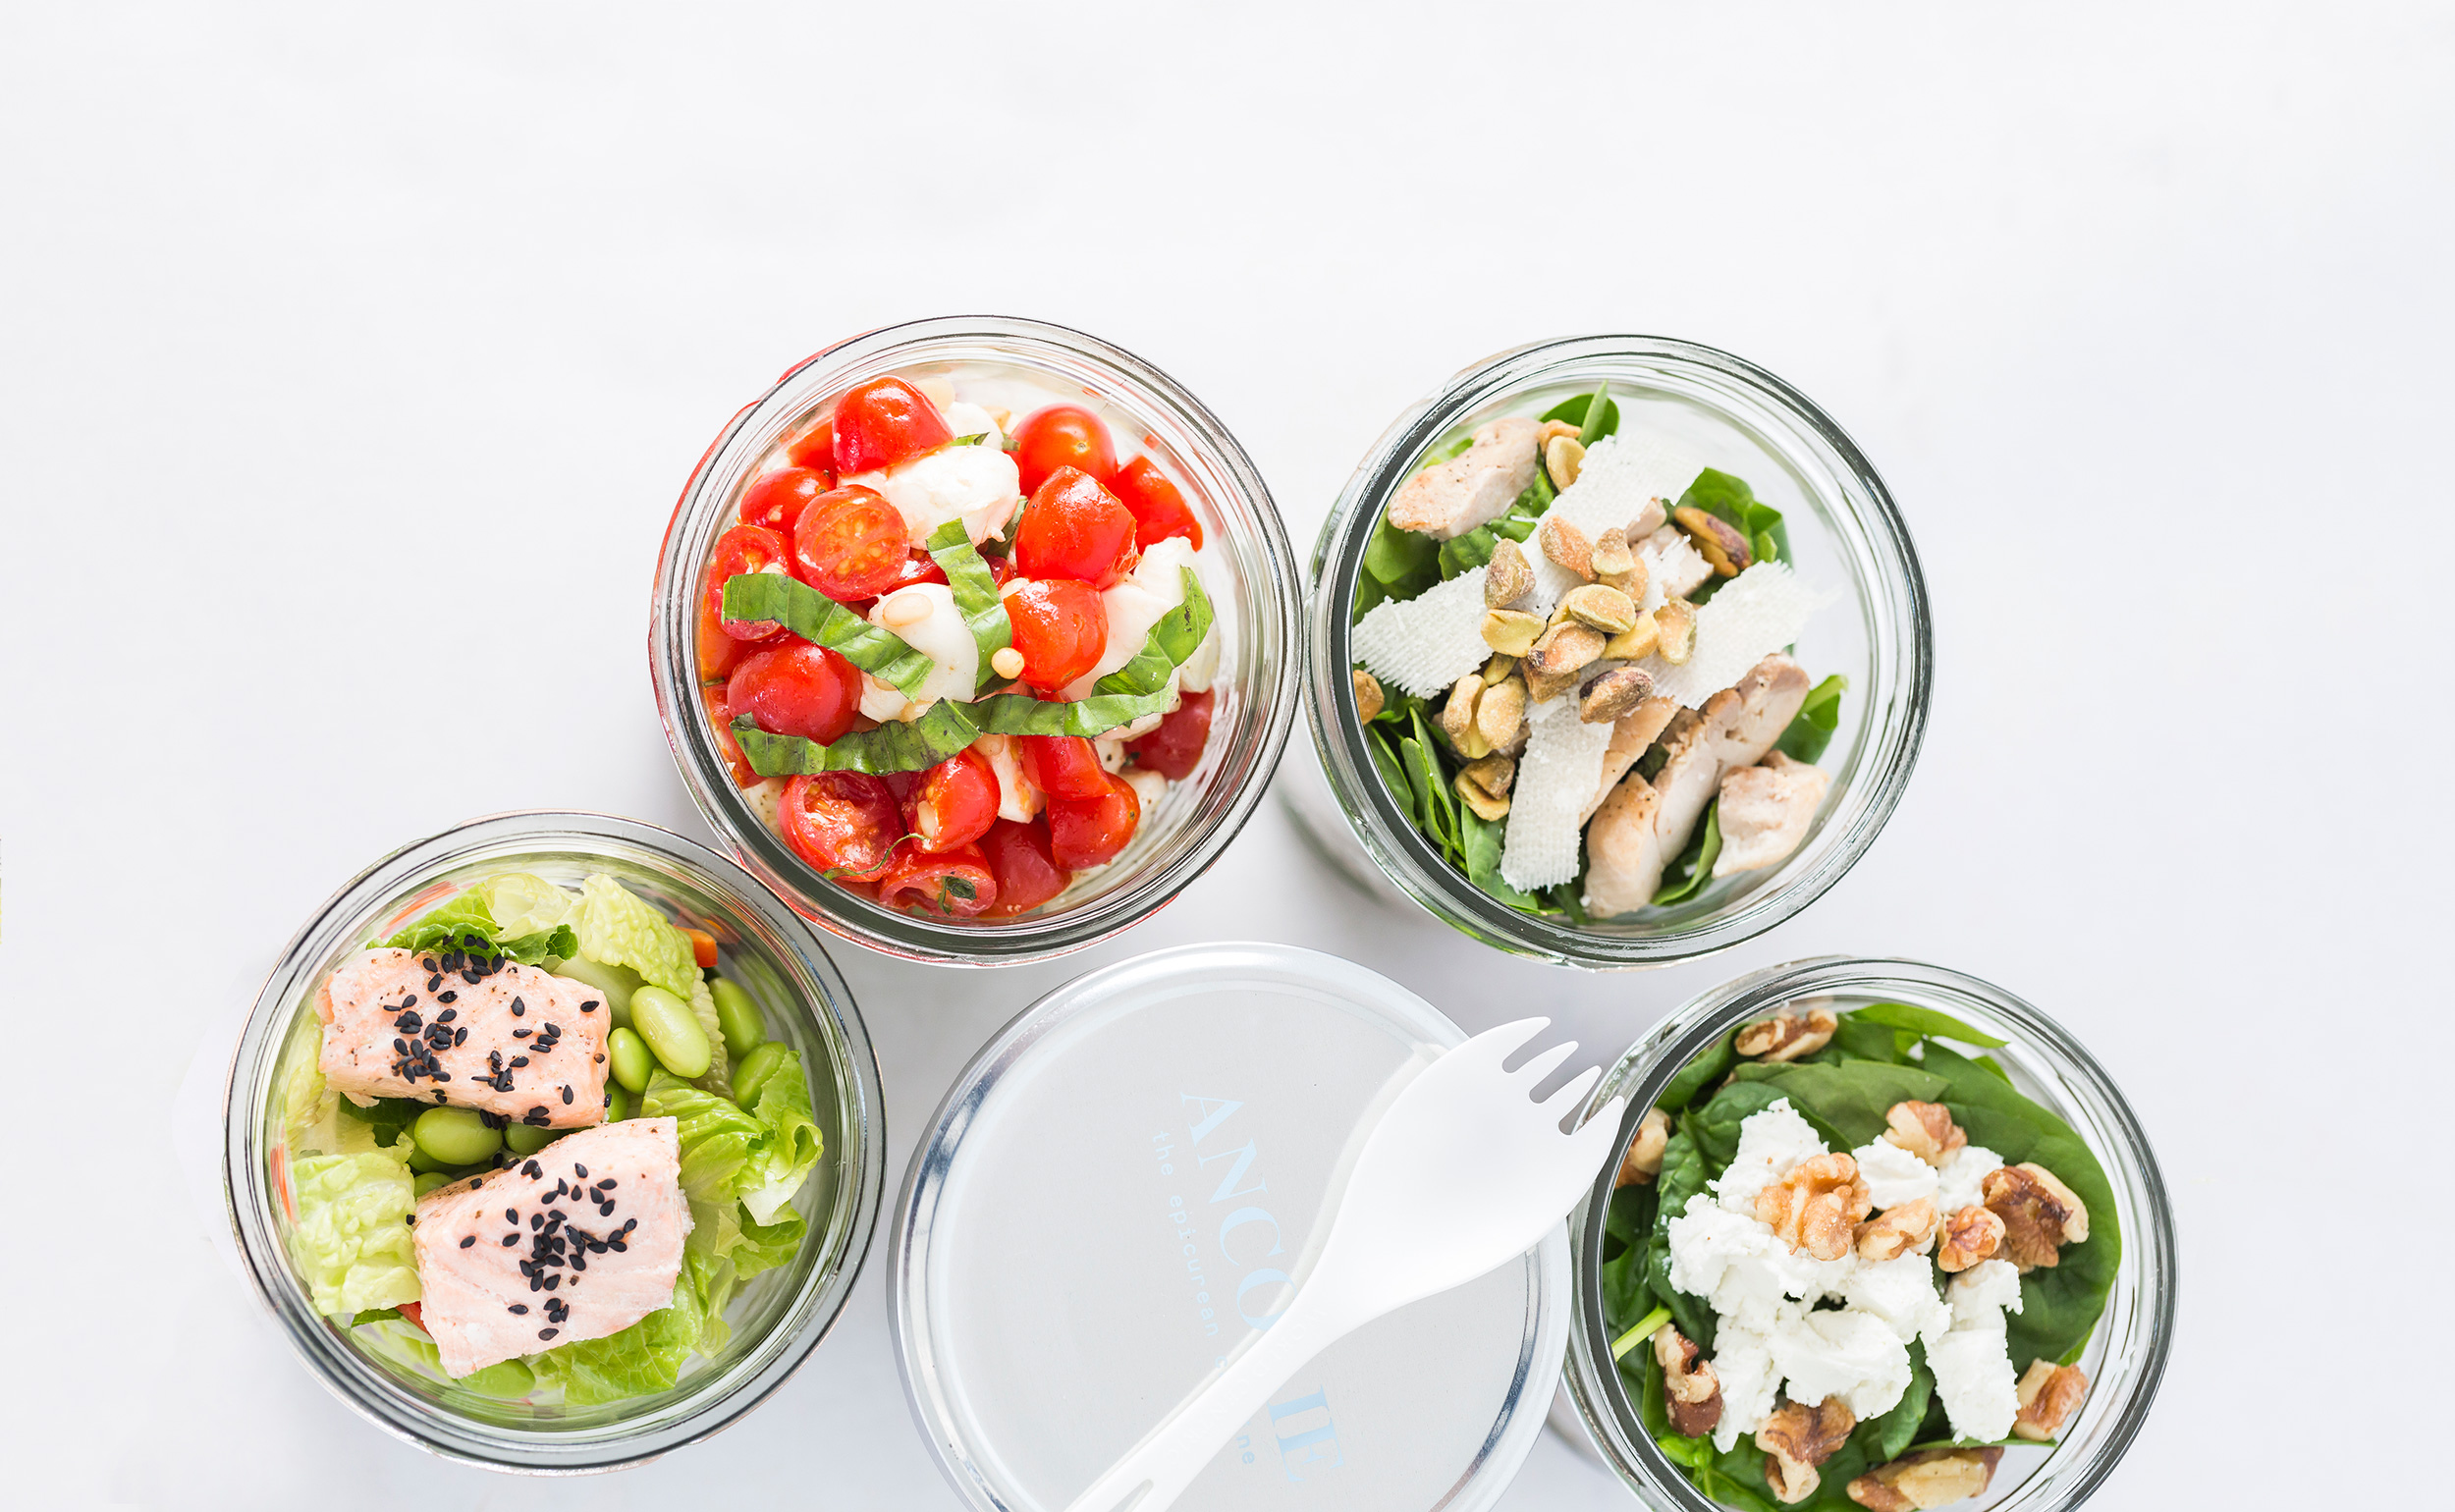 Ancolie - NYC - Food in Jars - Restaurant